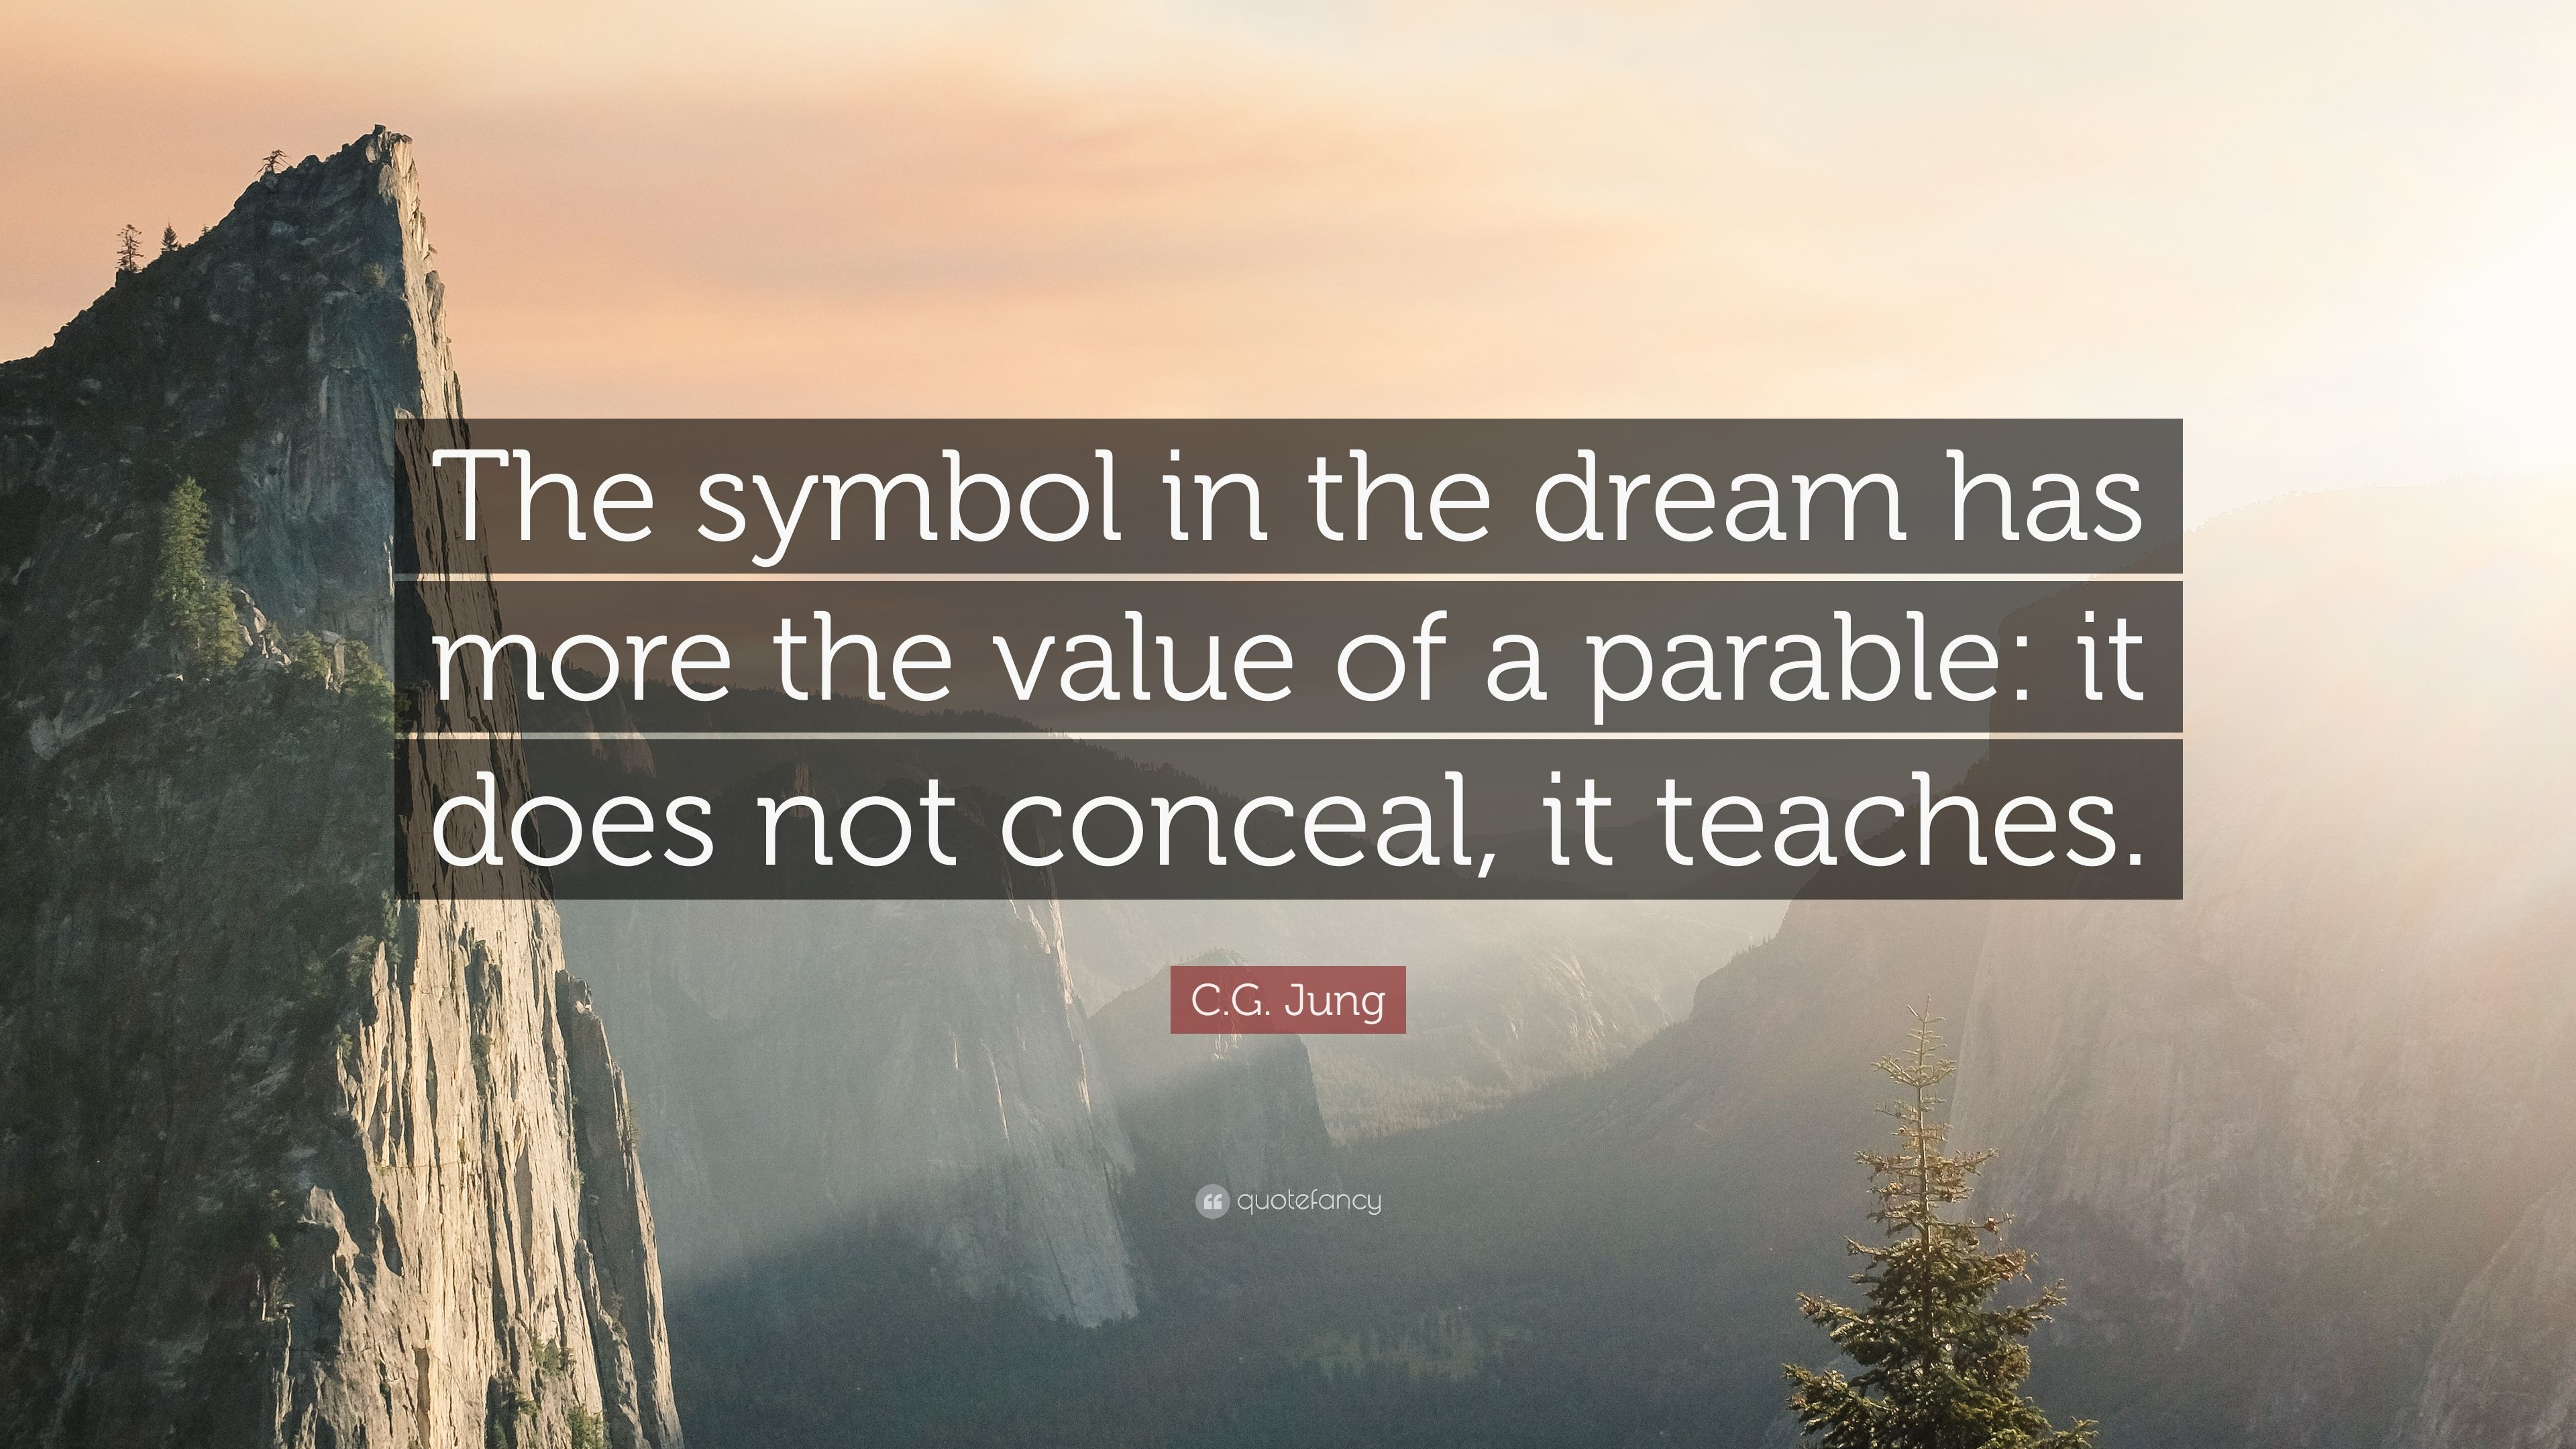 Cg jung quote the symbol in the dream has more the value of a cg jung quote the symbol in the dream has more the value of a biocorpaavc Choice Image